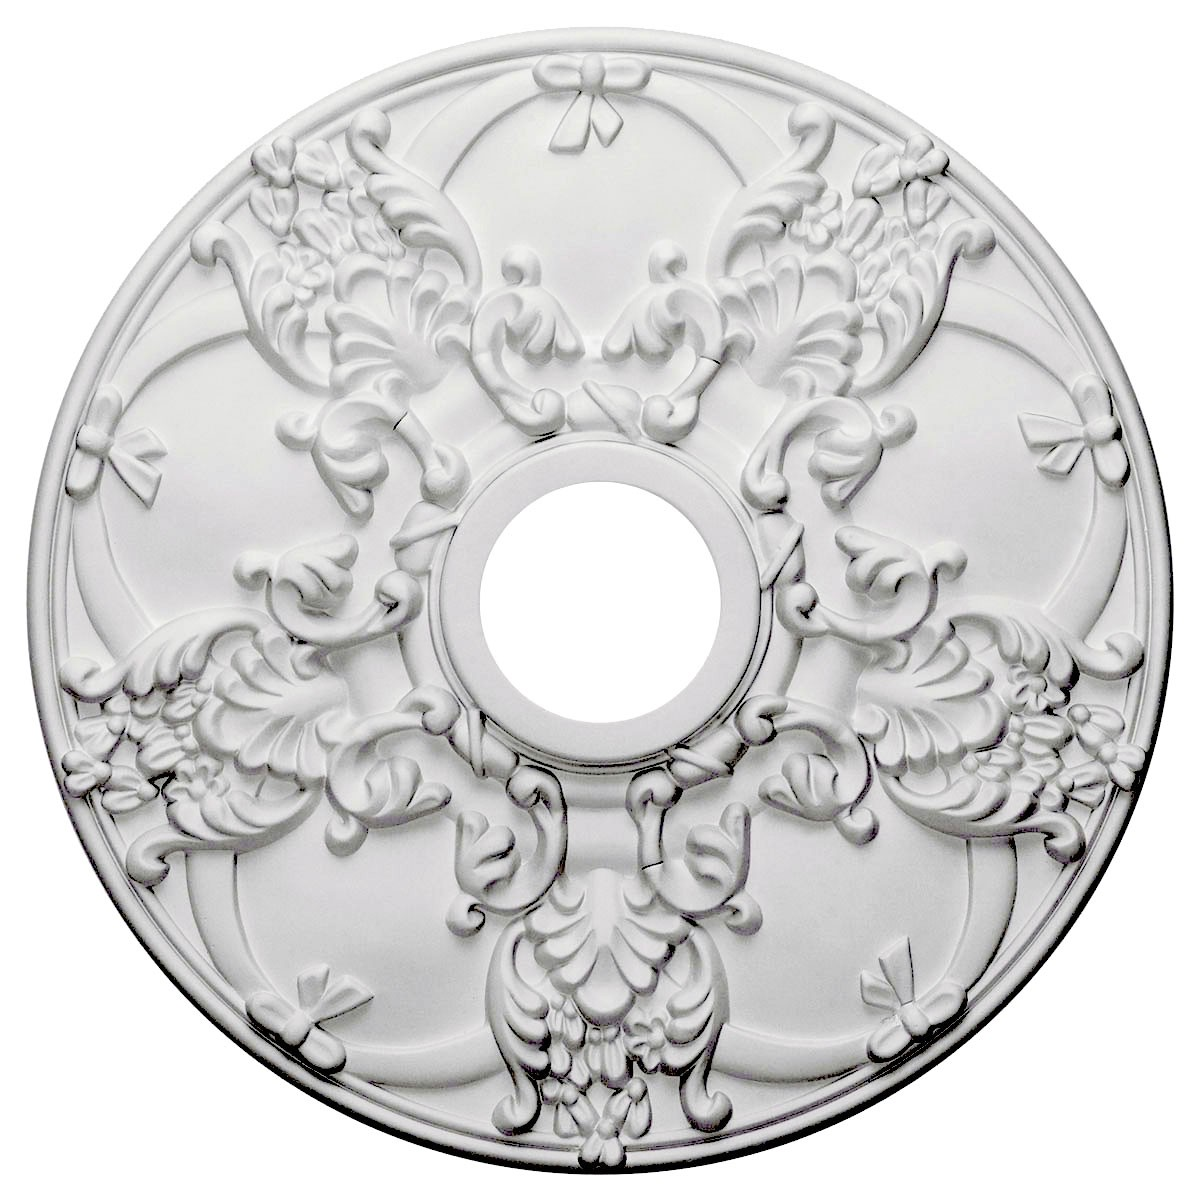 """EM-CM18NO - 18""""OD x 3 1/2""""ID x 1 3/8""""P Norwich Ceiling Medallion (Fits Canopies up to 4 1/2"""")"""